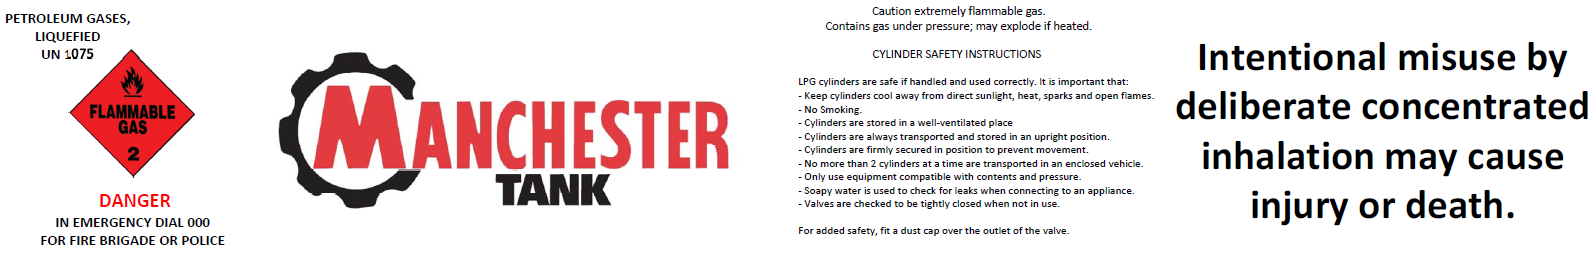 Compliant gas cylinder label - Manchester